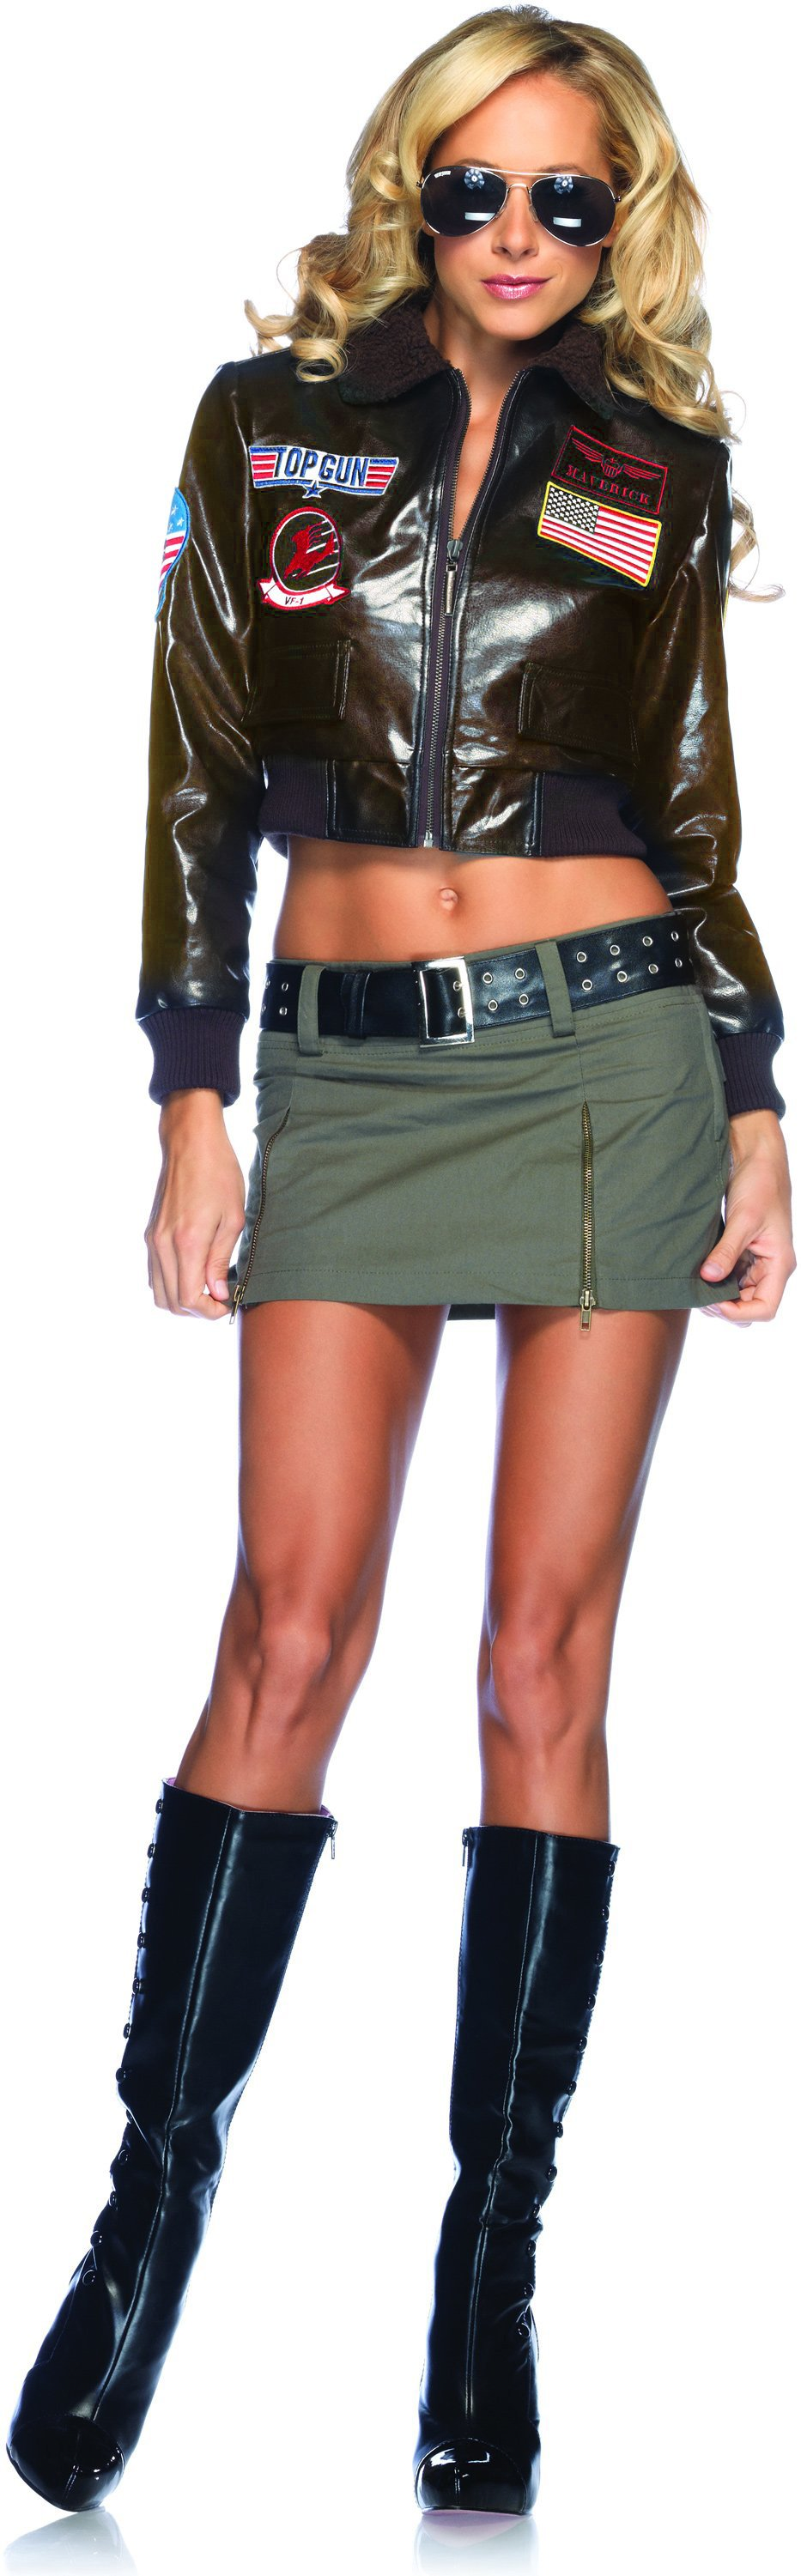 Top Gun Bomber Jacket Adult Costume (Female)